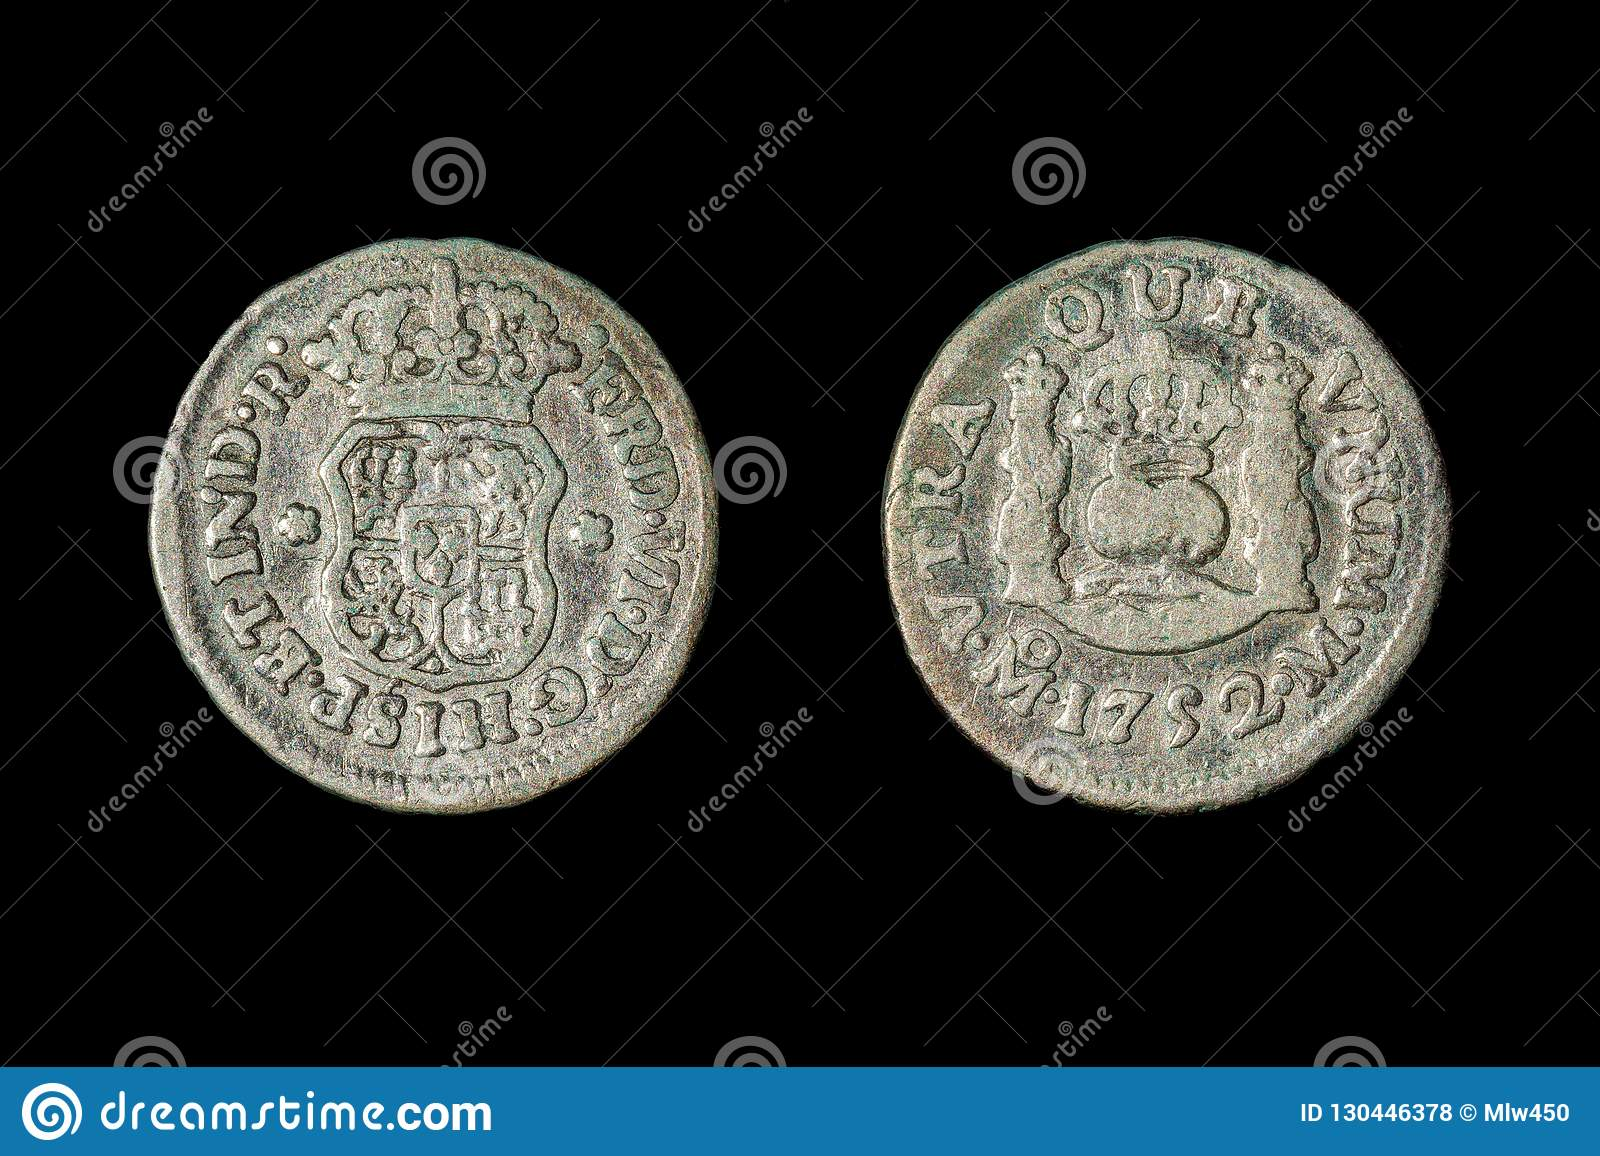 A 1752 Spanish half real coin, called a `picayune` in the United States. Isolated on black